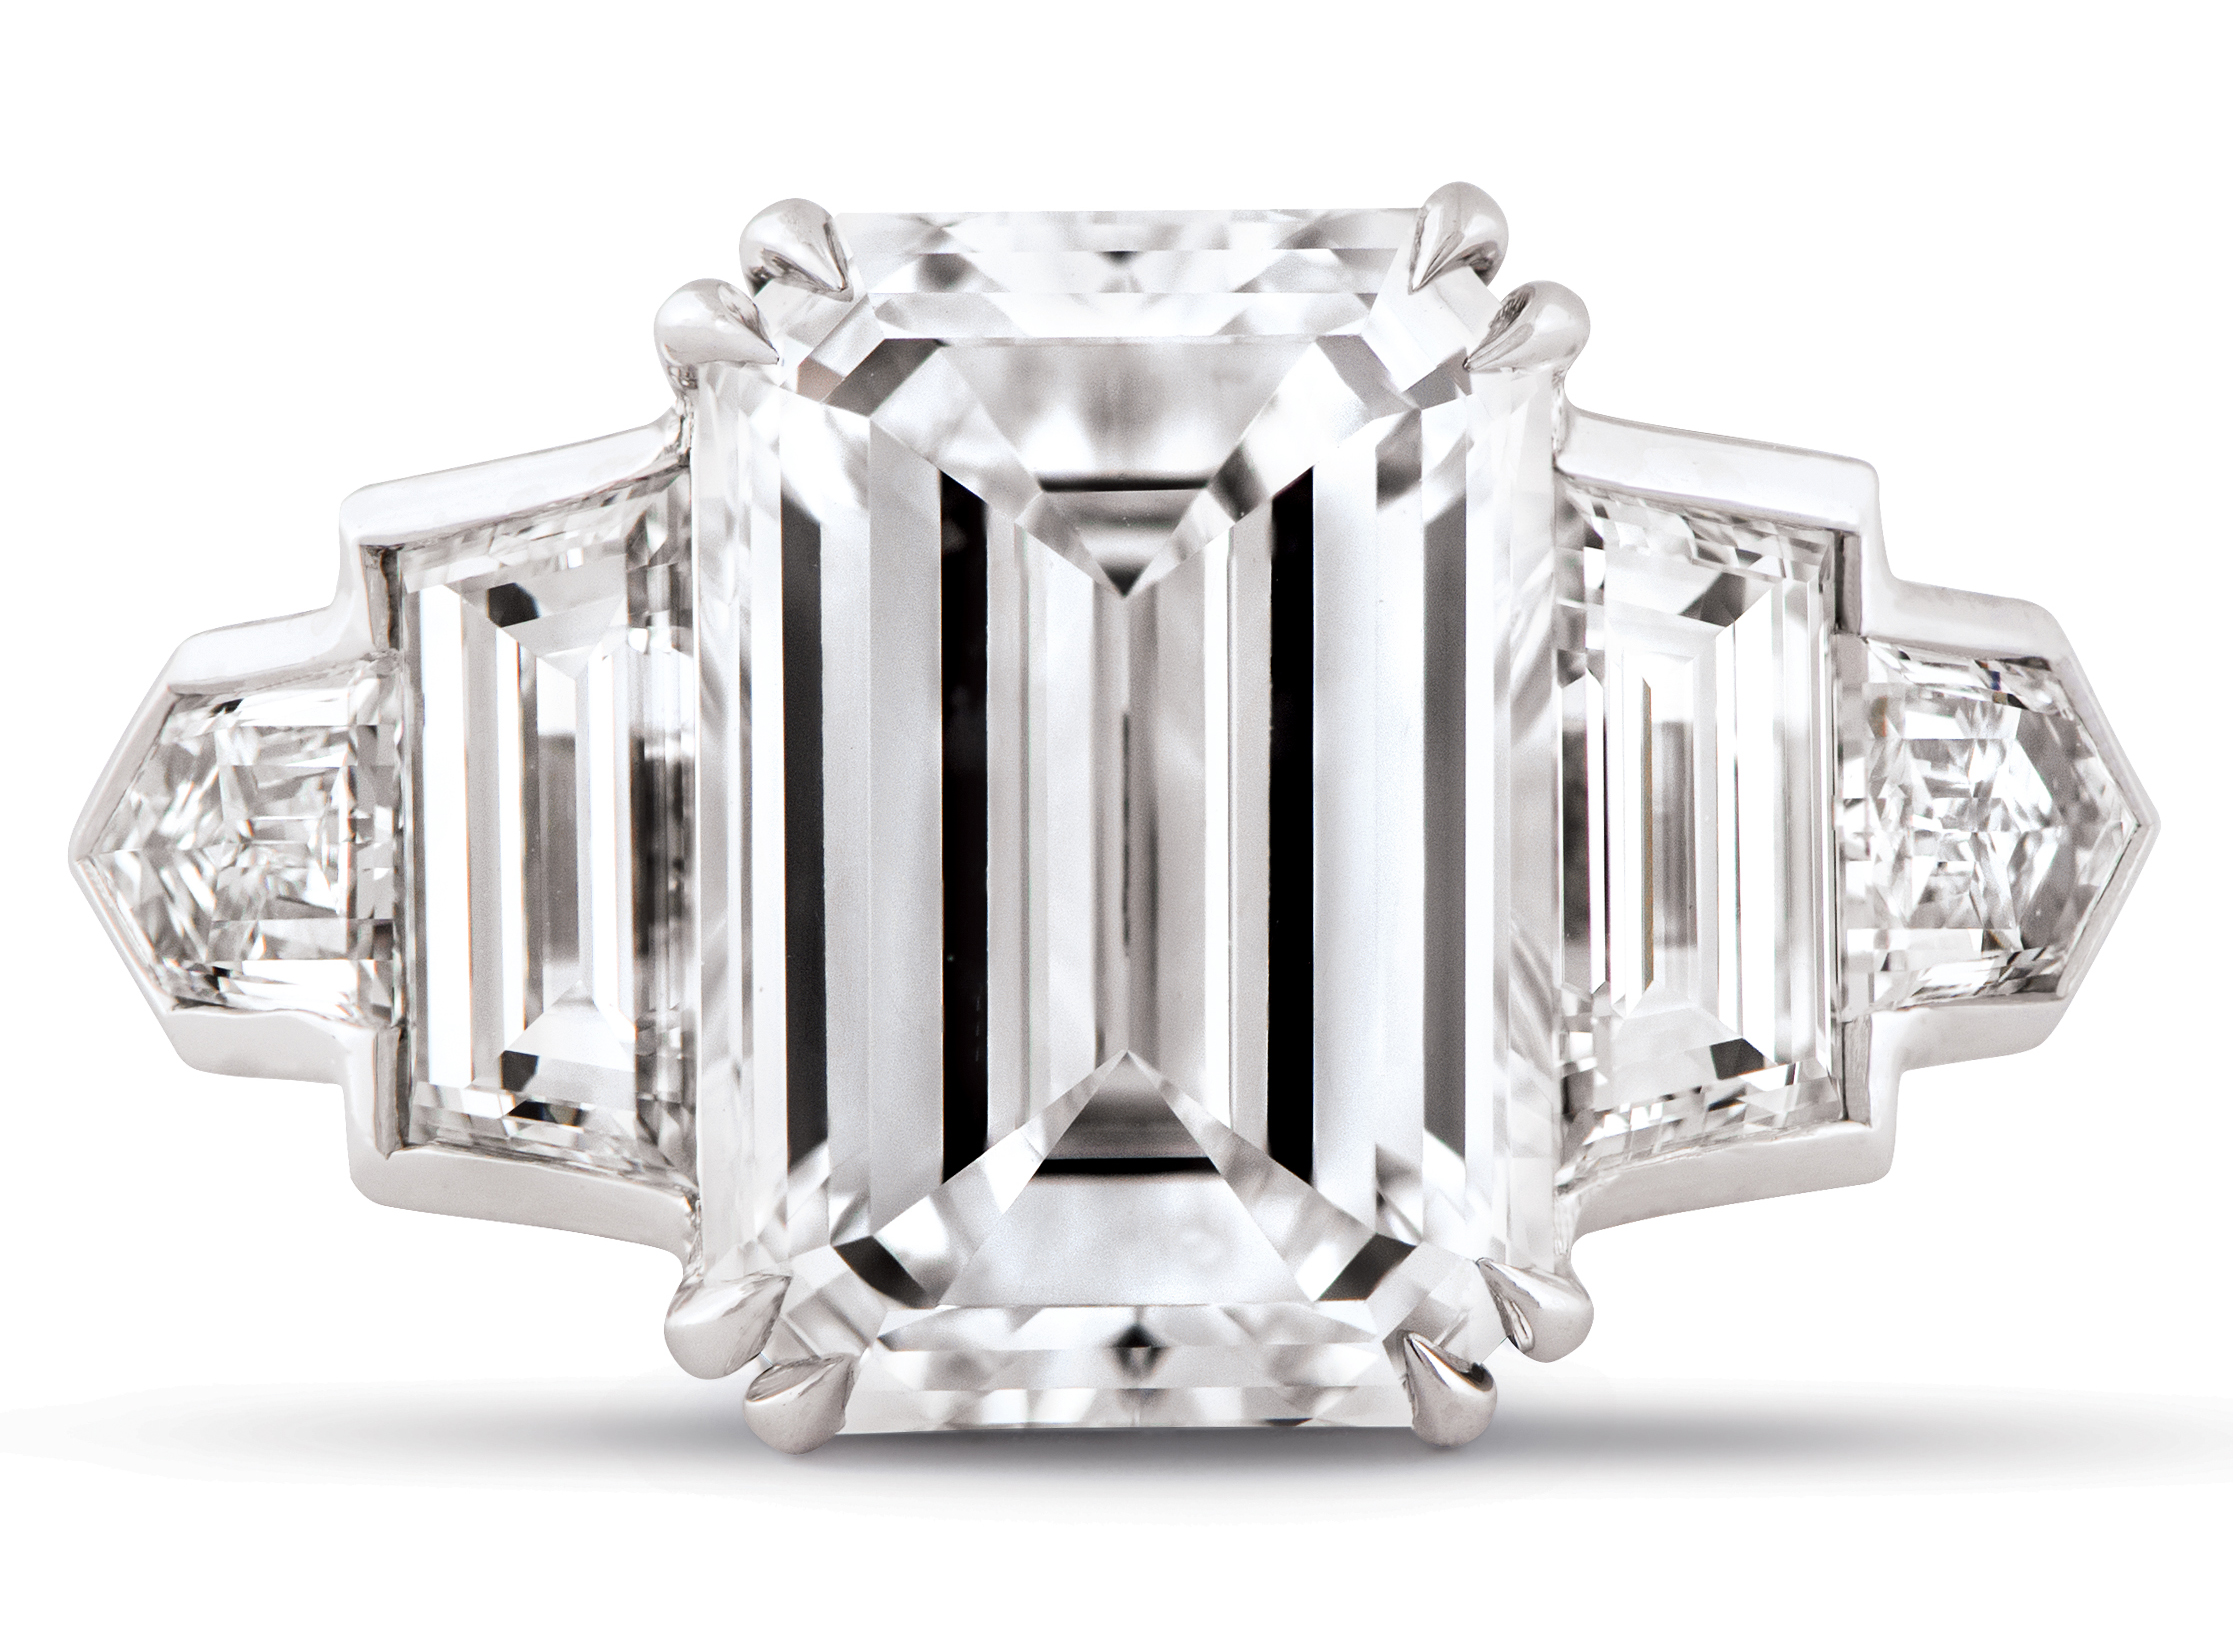 While the more unusual cuts of diamonds have been gathering momentum - Sometimes Called A Pillow Cut Diamond The Cushion Cut Has Earned Its Name For Its Pillow Shape Cushion Cut Diamonds Tend To Have Impeccable Brilliance